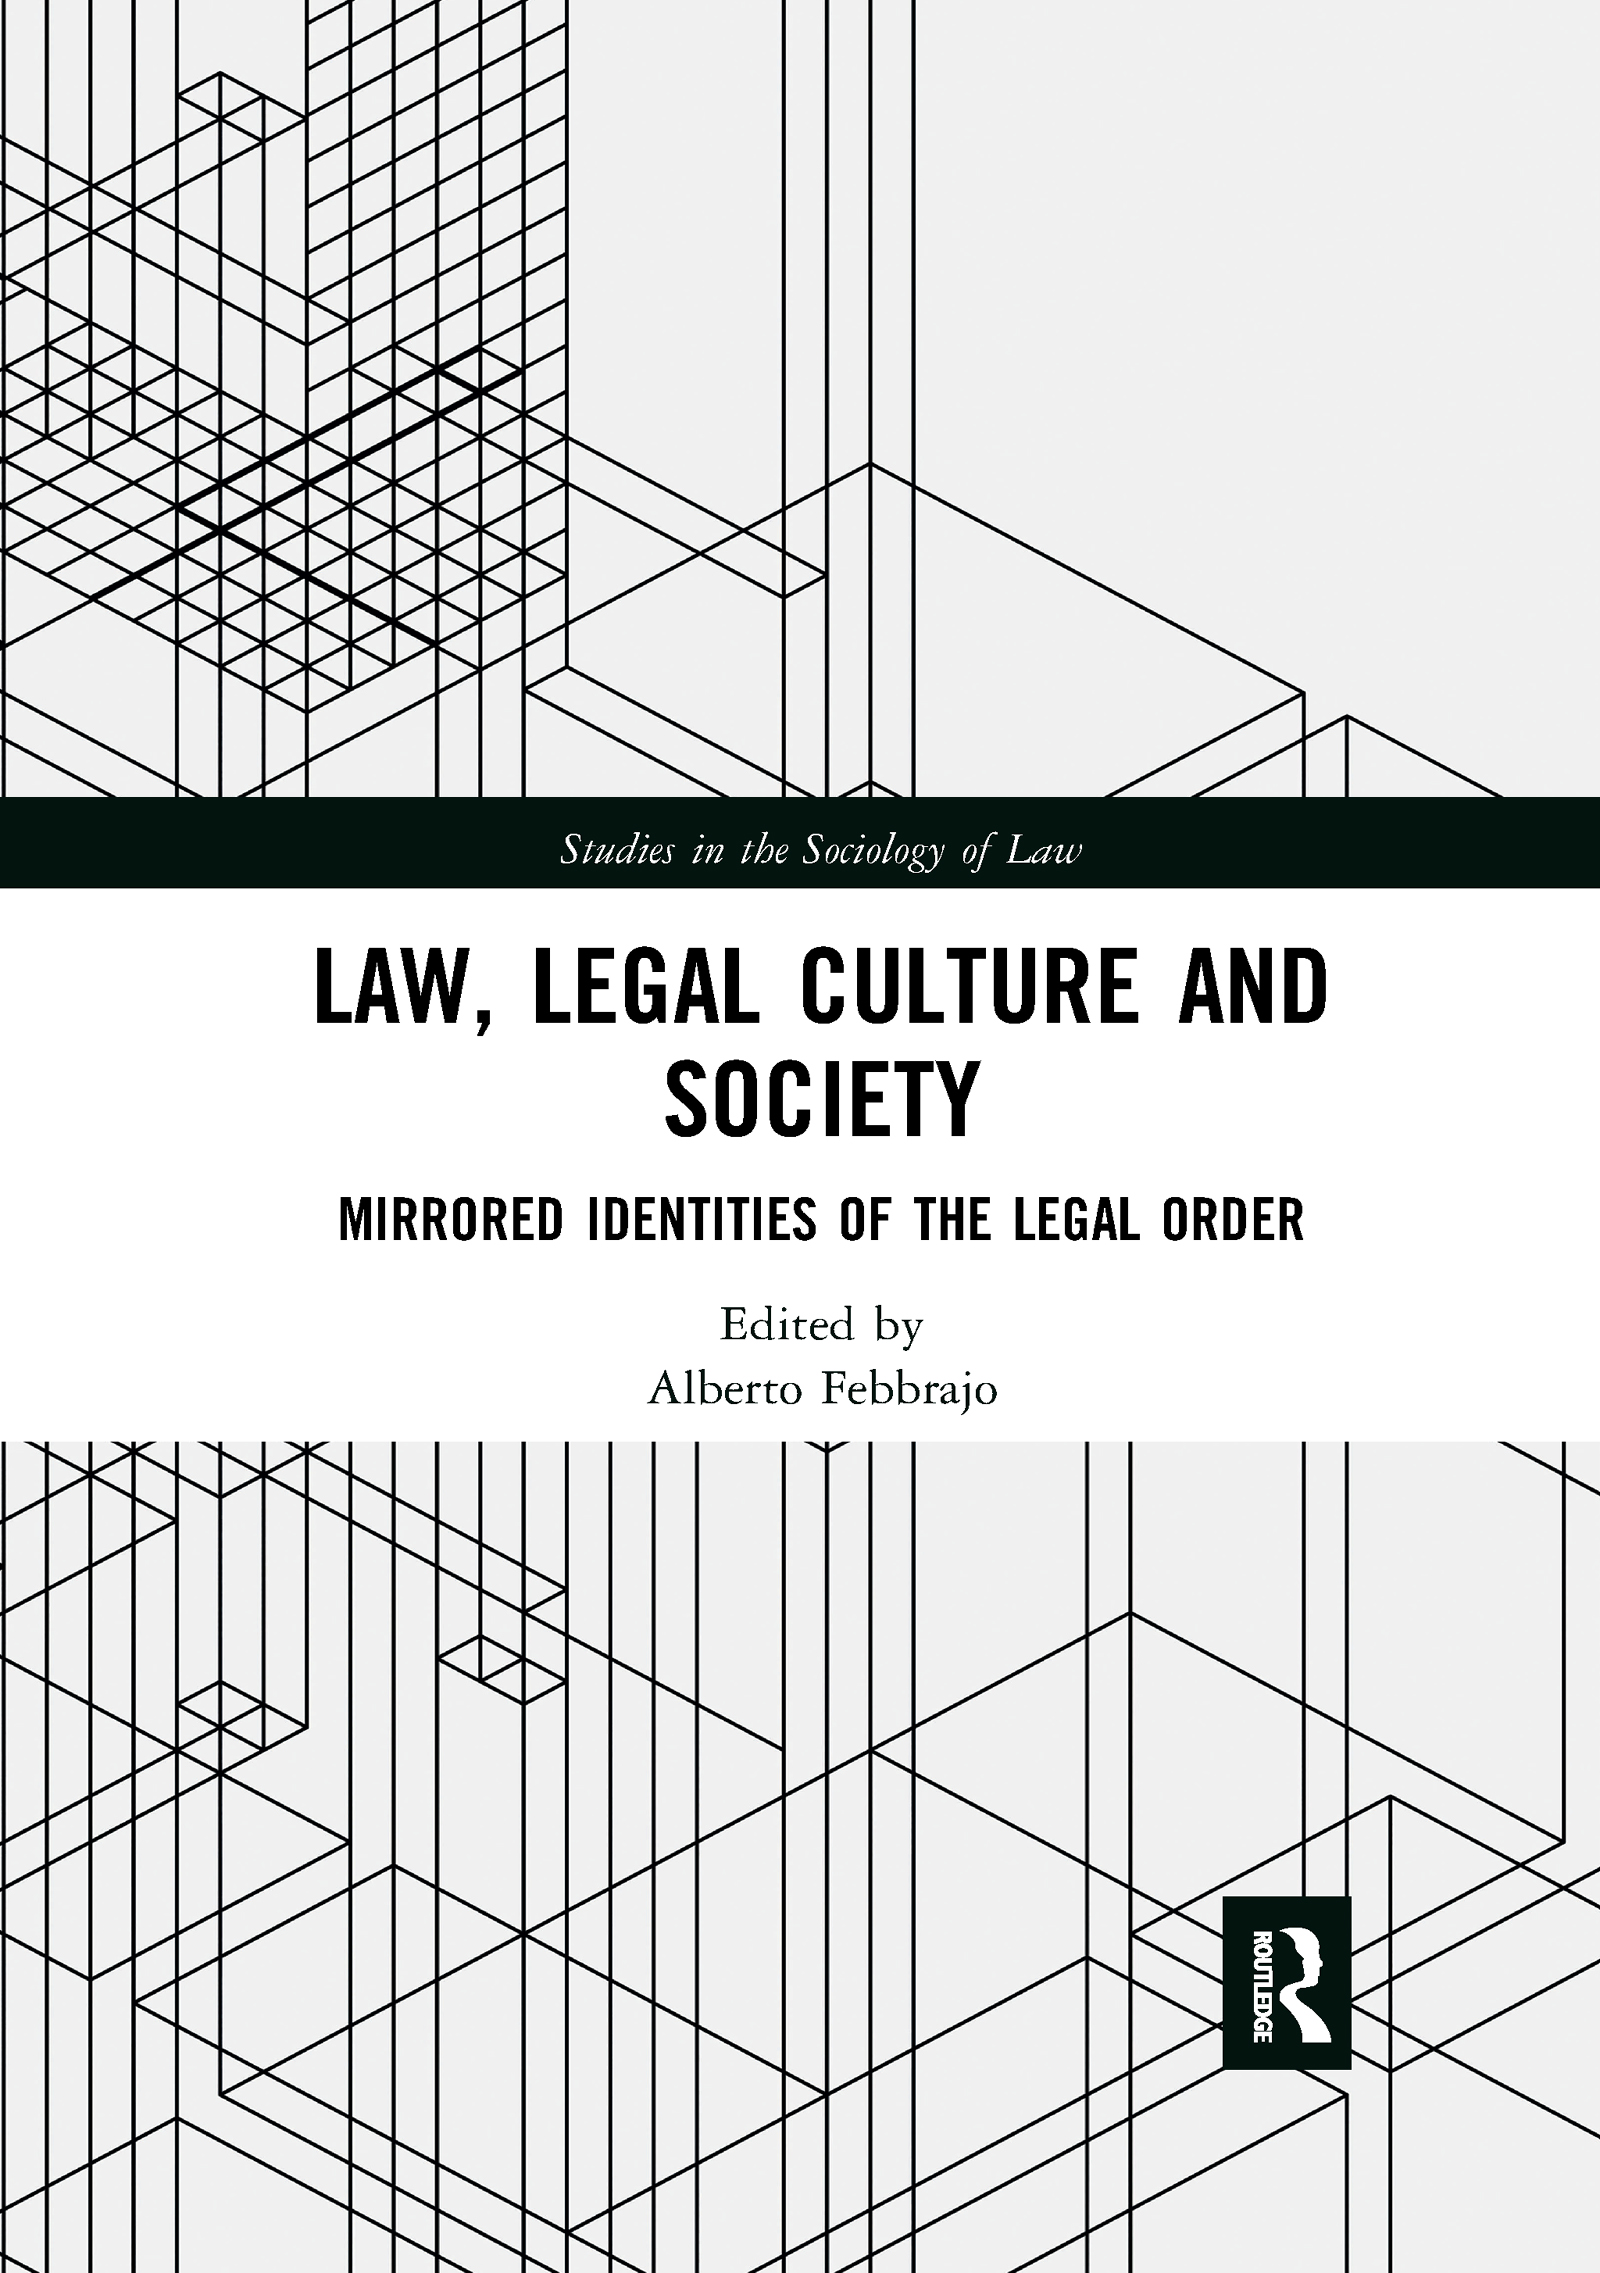 Law, Legal Culture and Society